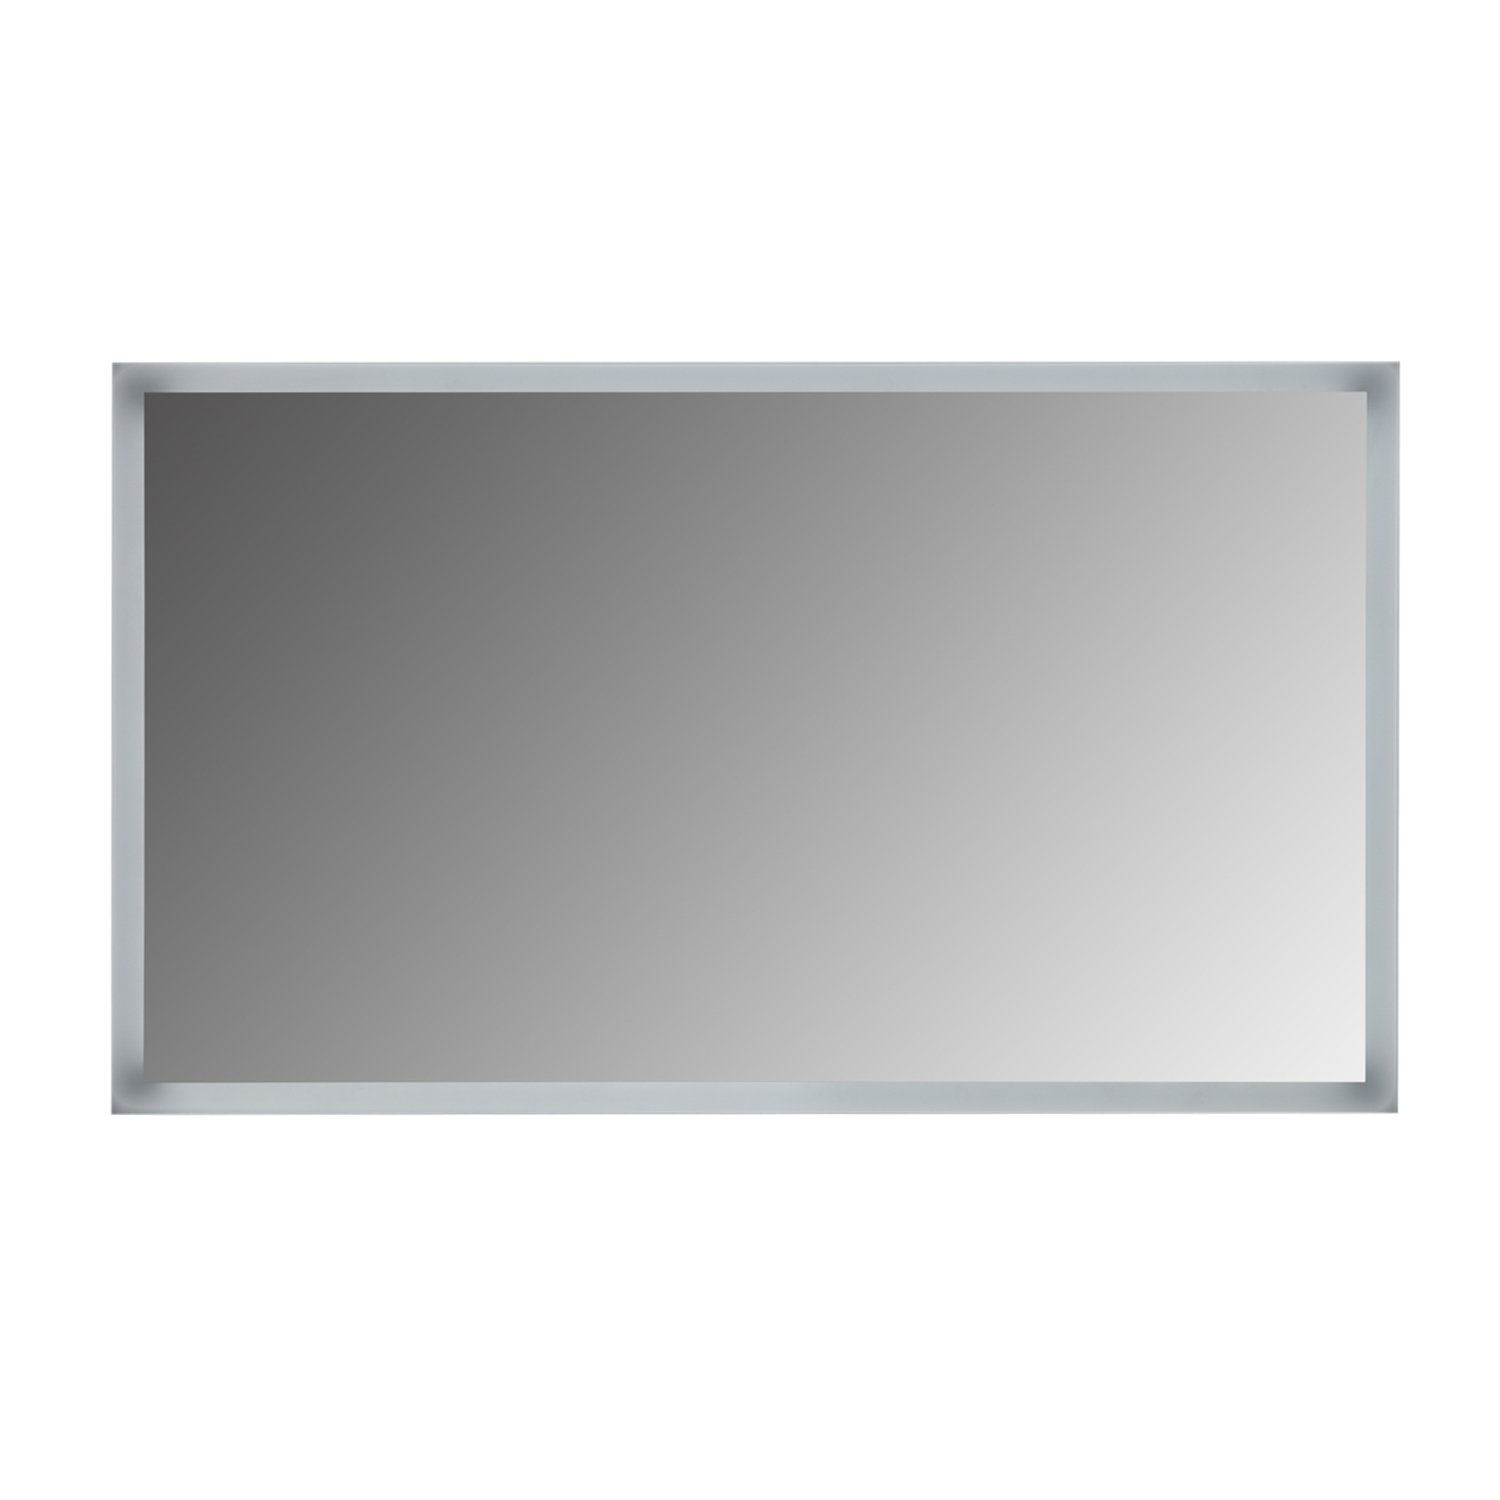 MAYKKE Riley 48'' W x 28'' H LED Mirror with Defogger, Wall Mounted Lighted Bathroom Vanity Mirror, Frameless Mirror, Horizontal or Vertical Mirror with LED Lighting Border UL Certified, LMA1064801